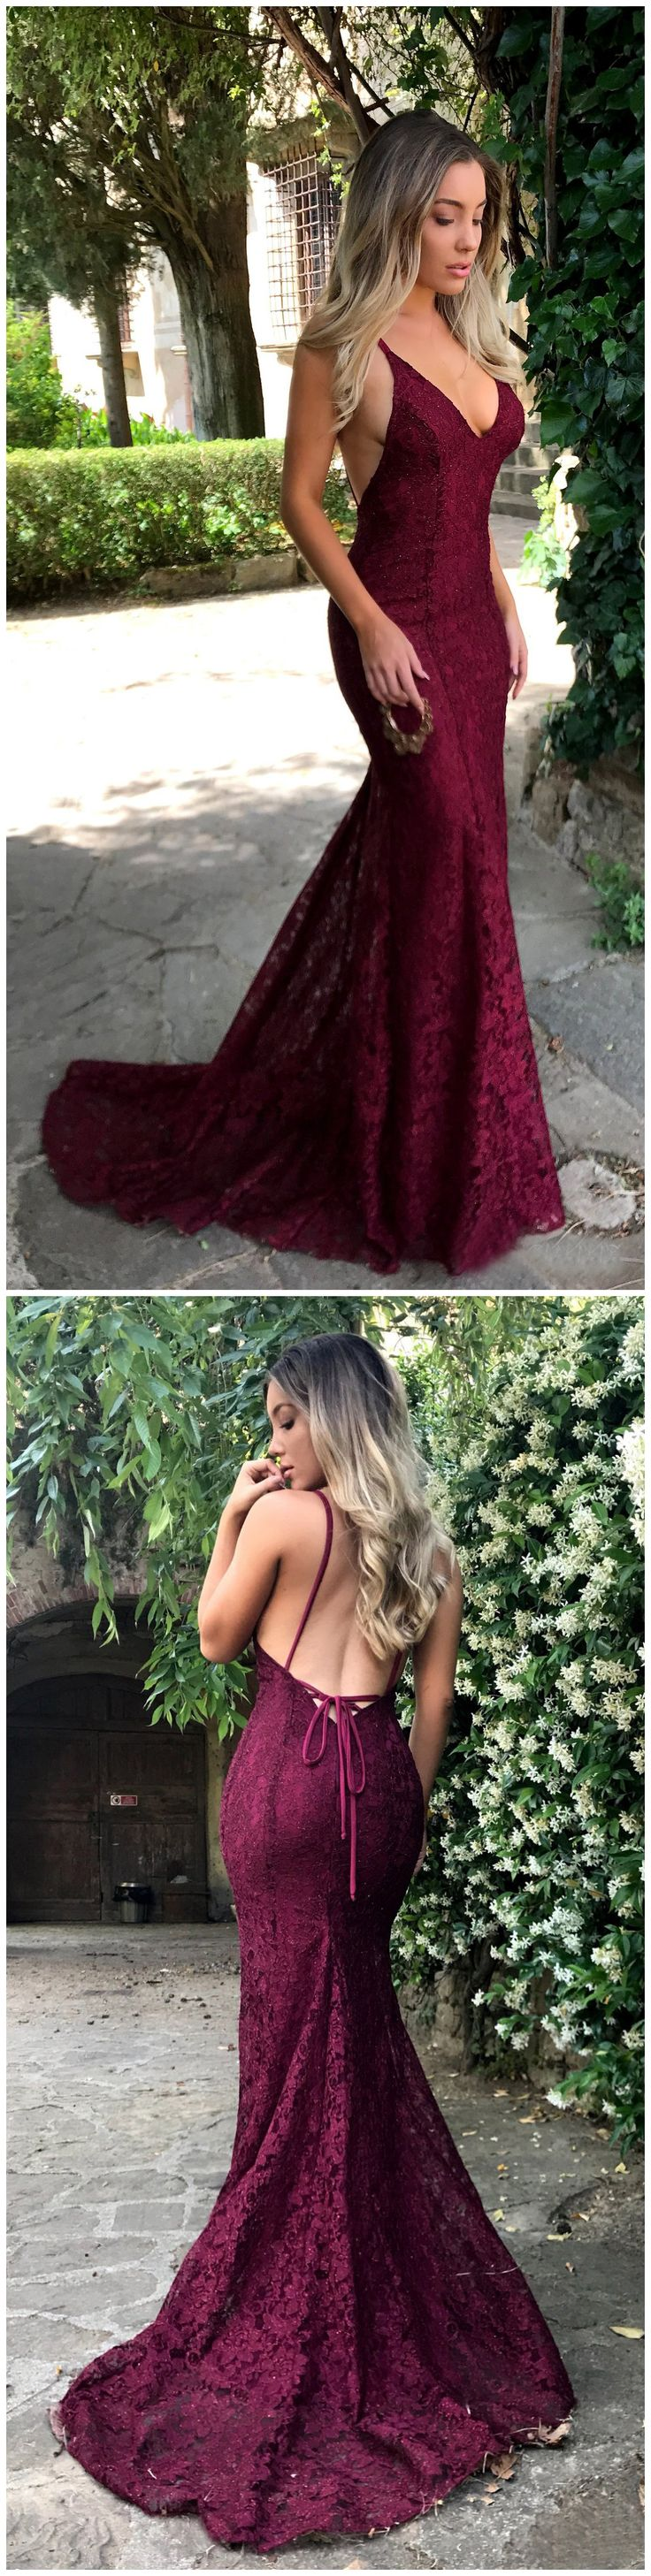 prom dresses long,prom dresses modest,prom dresses boho,prom dresses cheap,beautiful prom dresses,prom dresses 2018,prom dresses tight,prom dresses fitted,prom dresses with straps #amyprom #longpromdress #fashion #love #party #formal